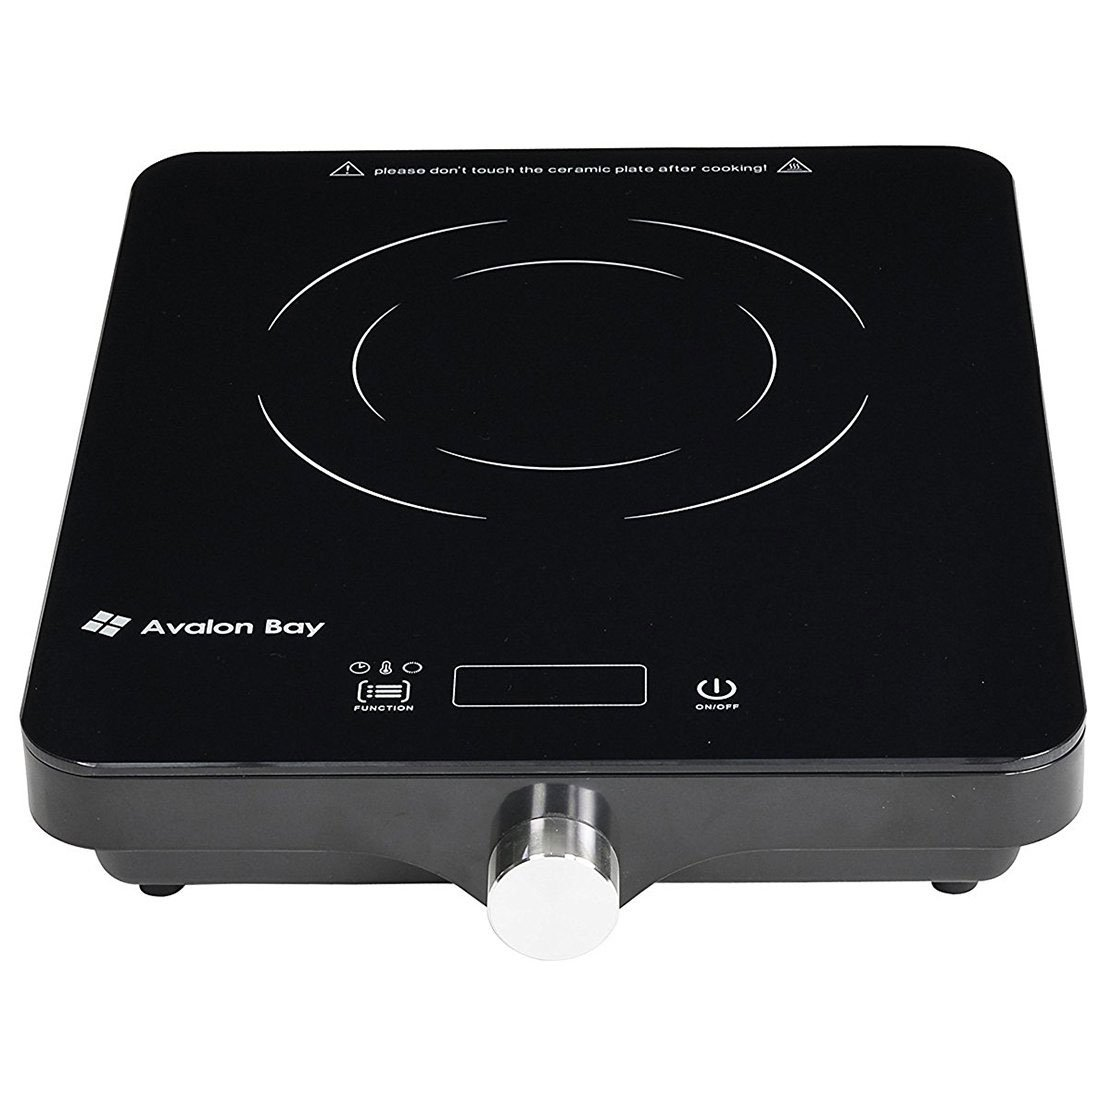 Avalon Bay Electric Portable Ceramic Deluxe Countertop Induction Cooktop Burner